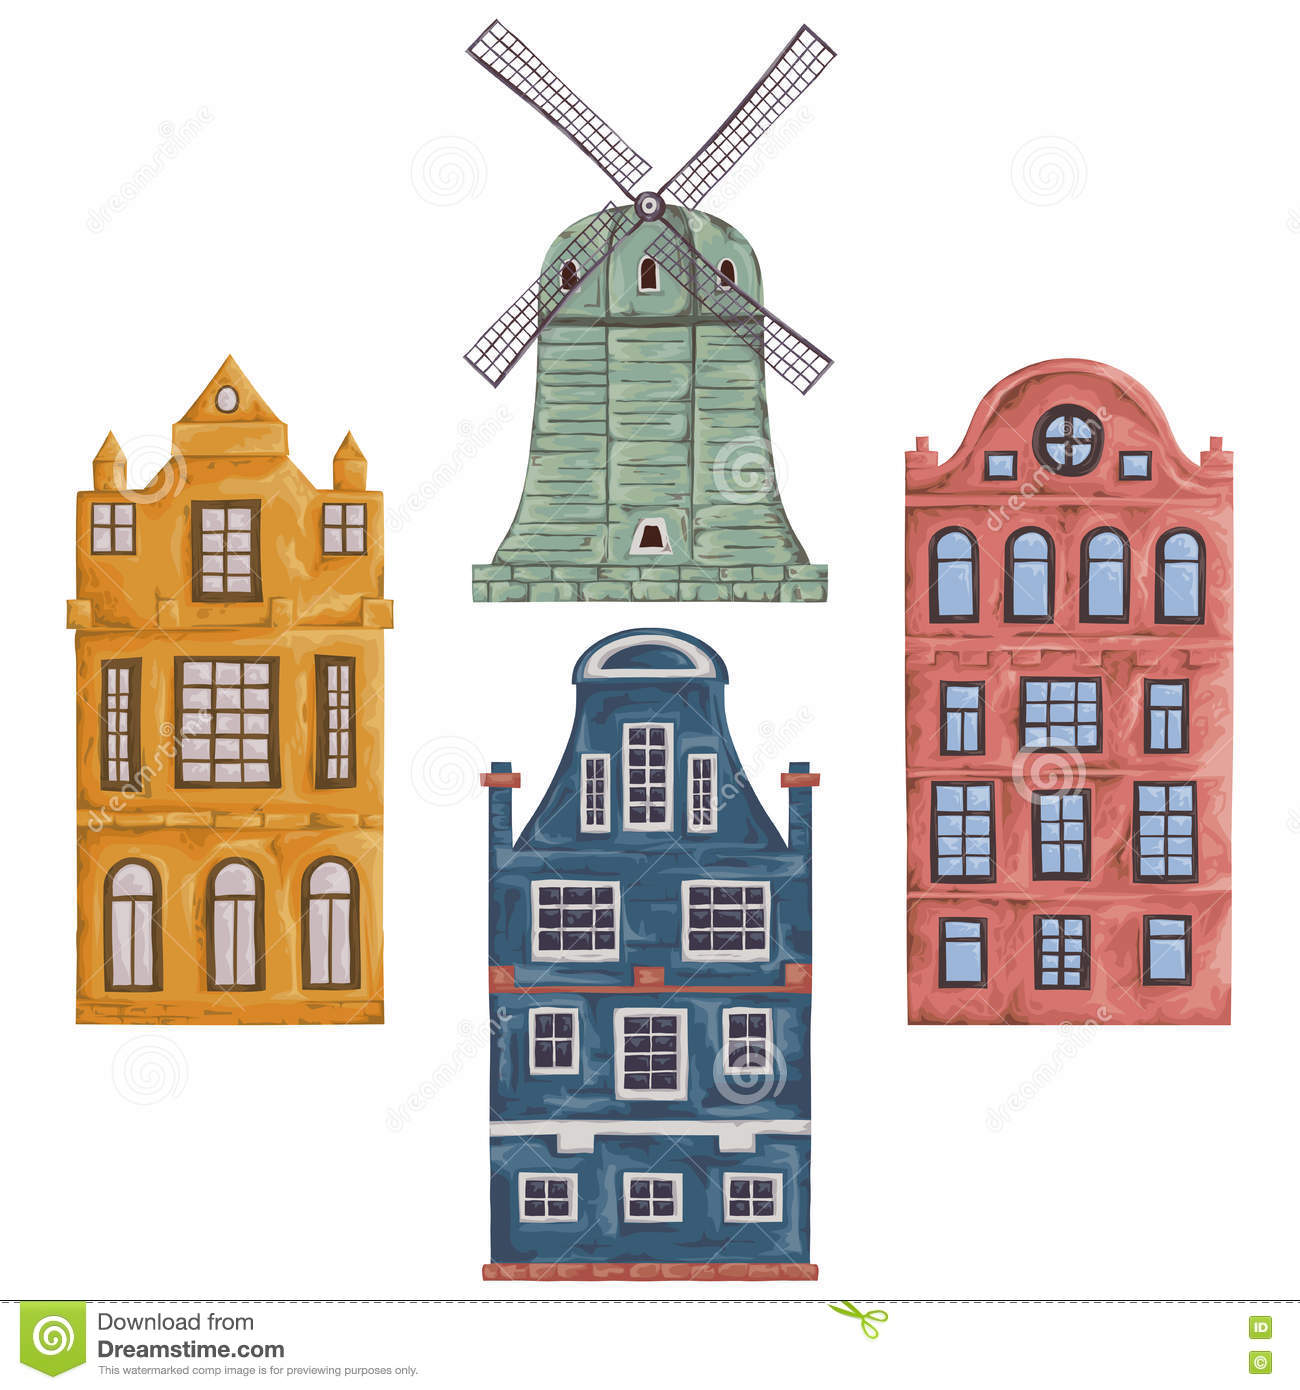 Amsterdam. Old Historic Buildings And Traditional Architecture Of.